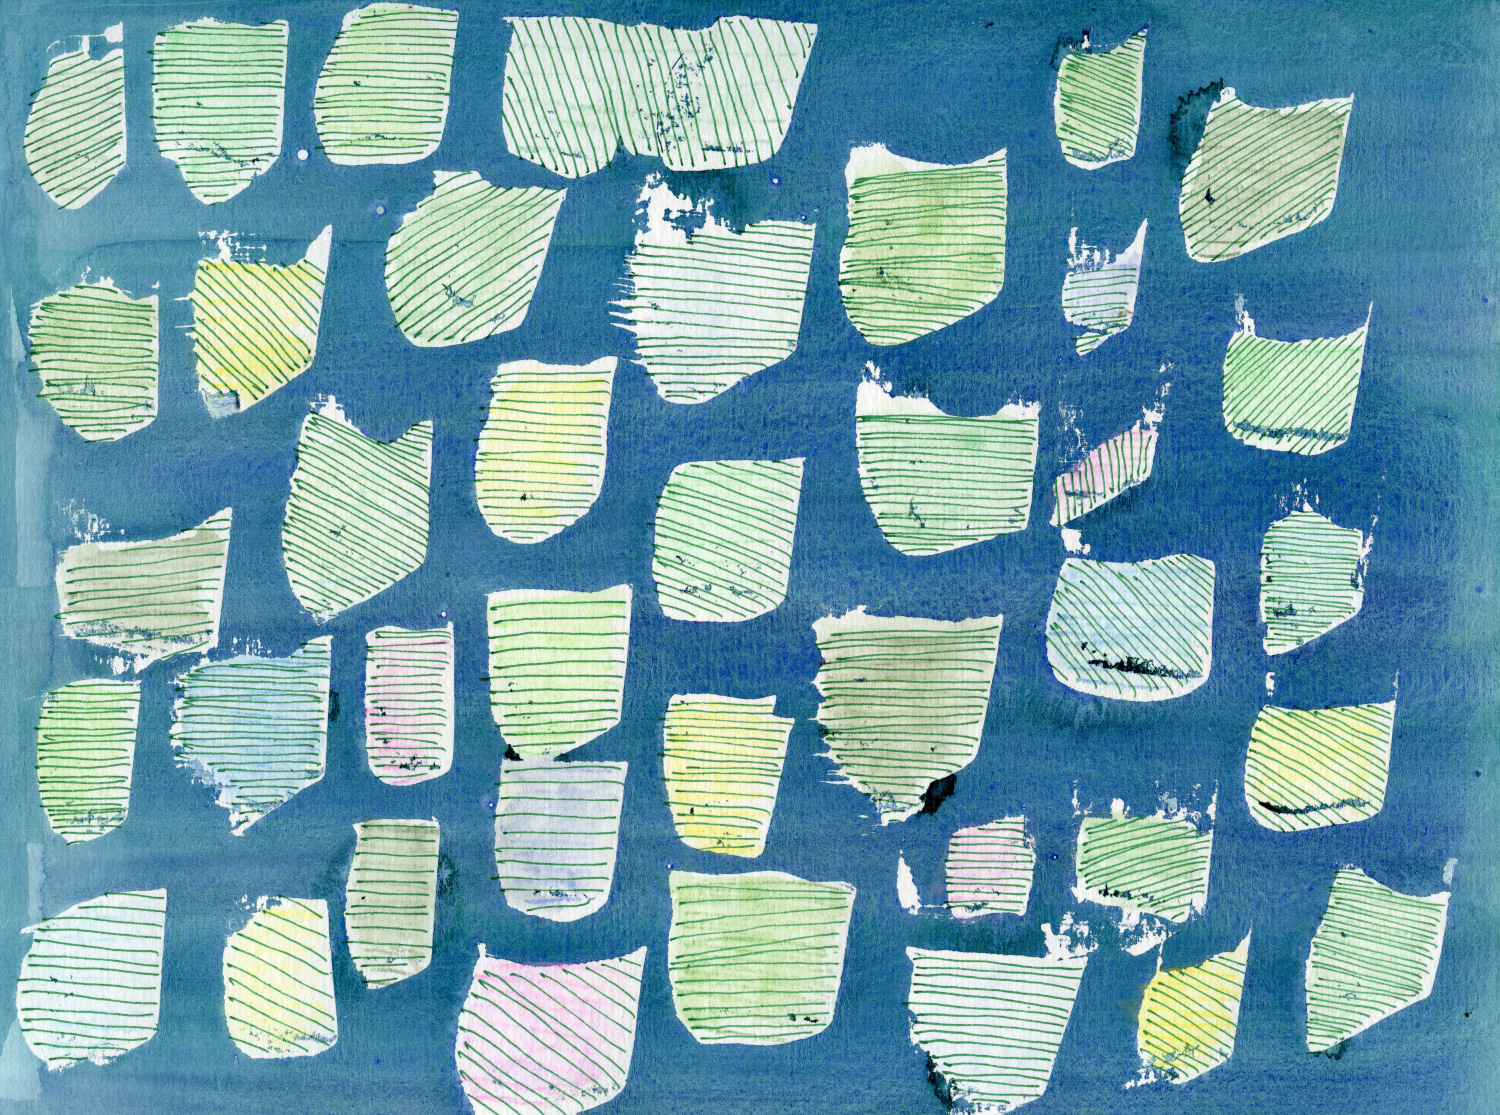 abstract painting with blue, green, pink, and yellow